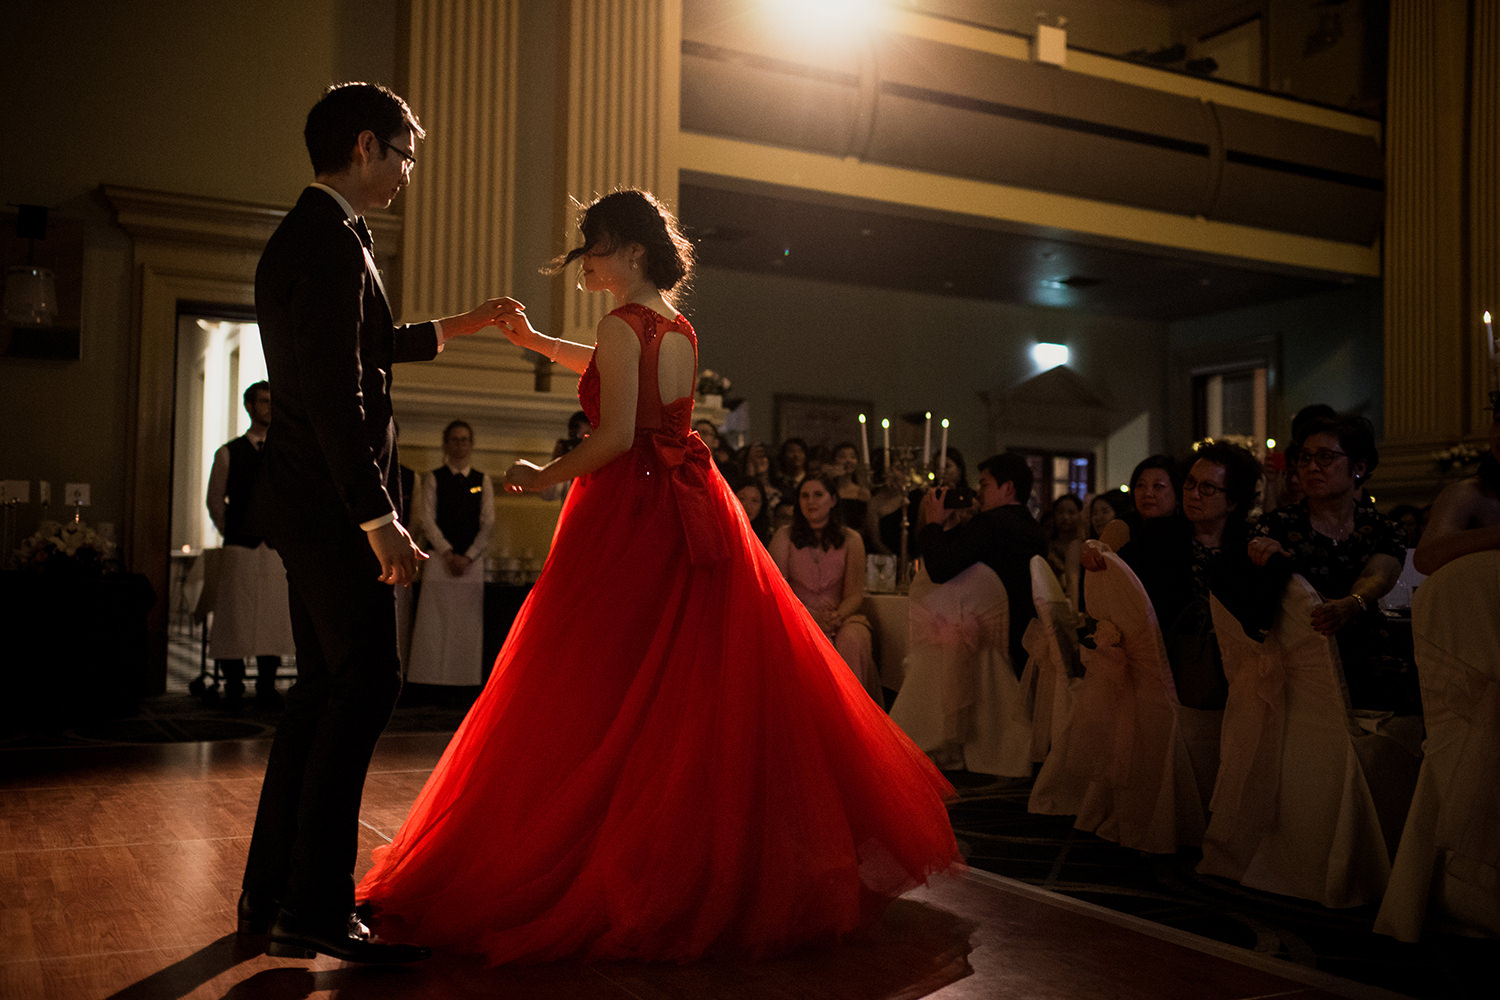 Bride in large red ballroom dress dancing with the groom